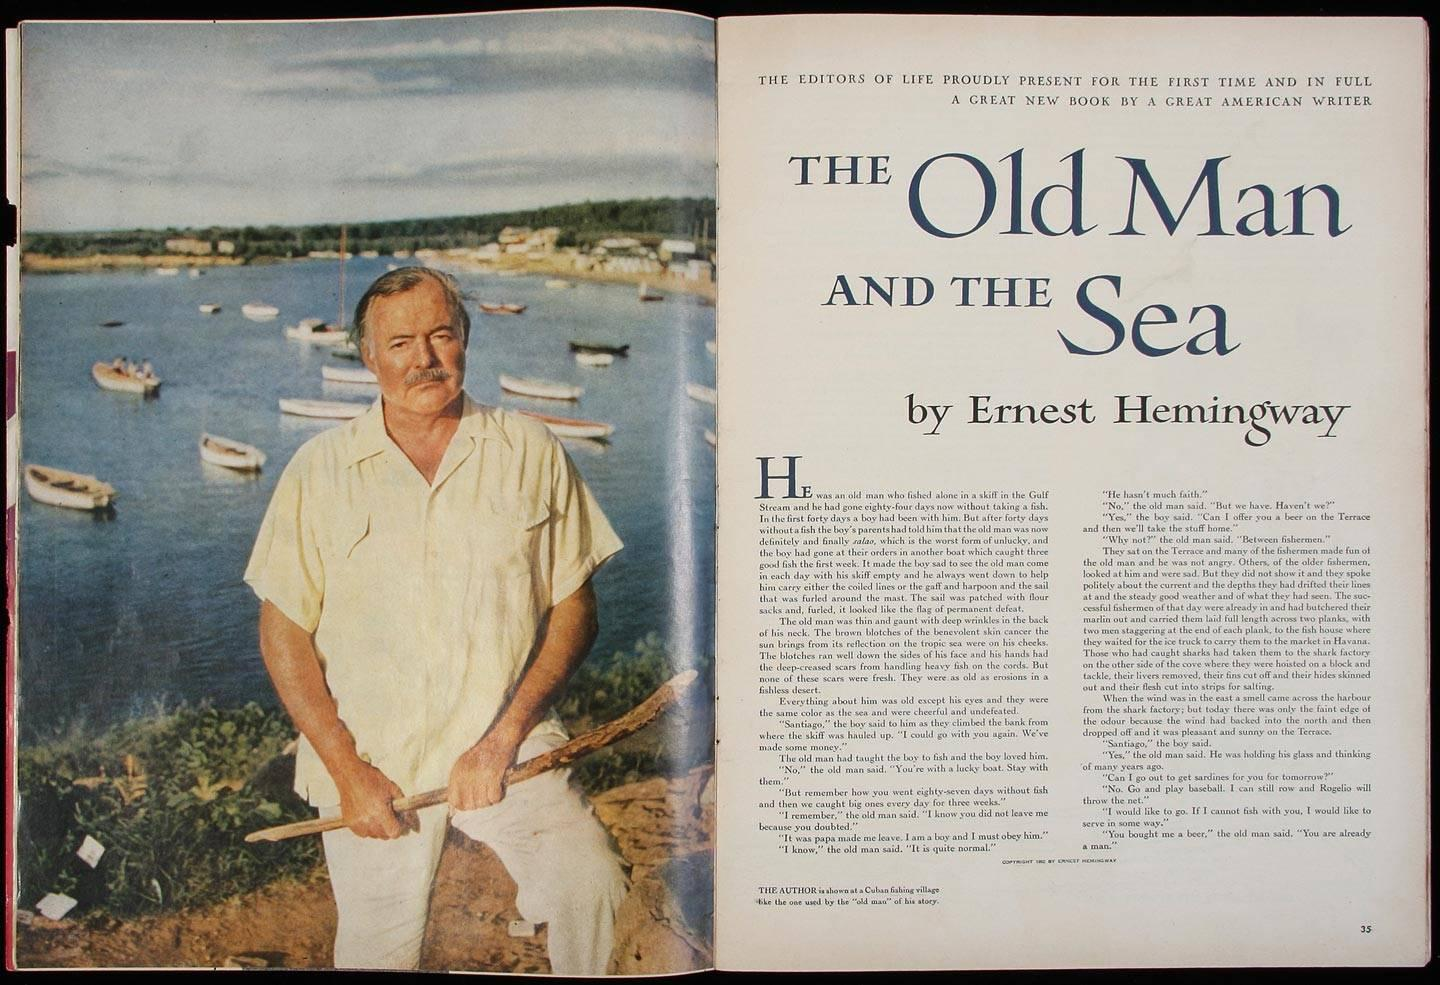 American novelist, Ernest Hemingway is shown left. To the right, the opening page of his Pulitzer Prize-winning novel, The Old Man and the Sea, which was inspired by Bimini, Bahamas